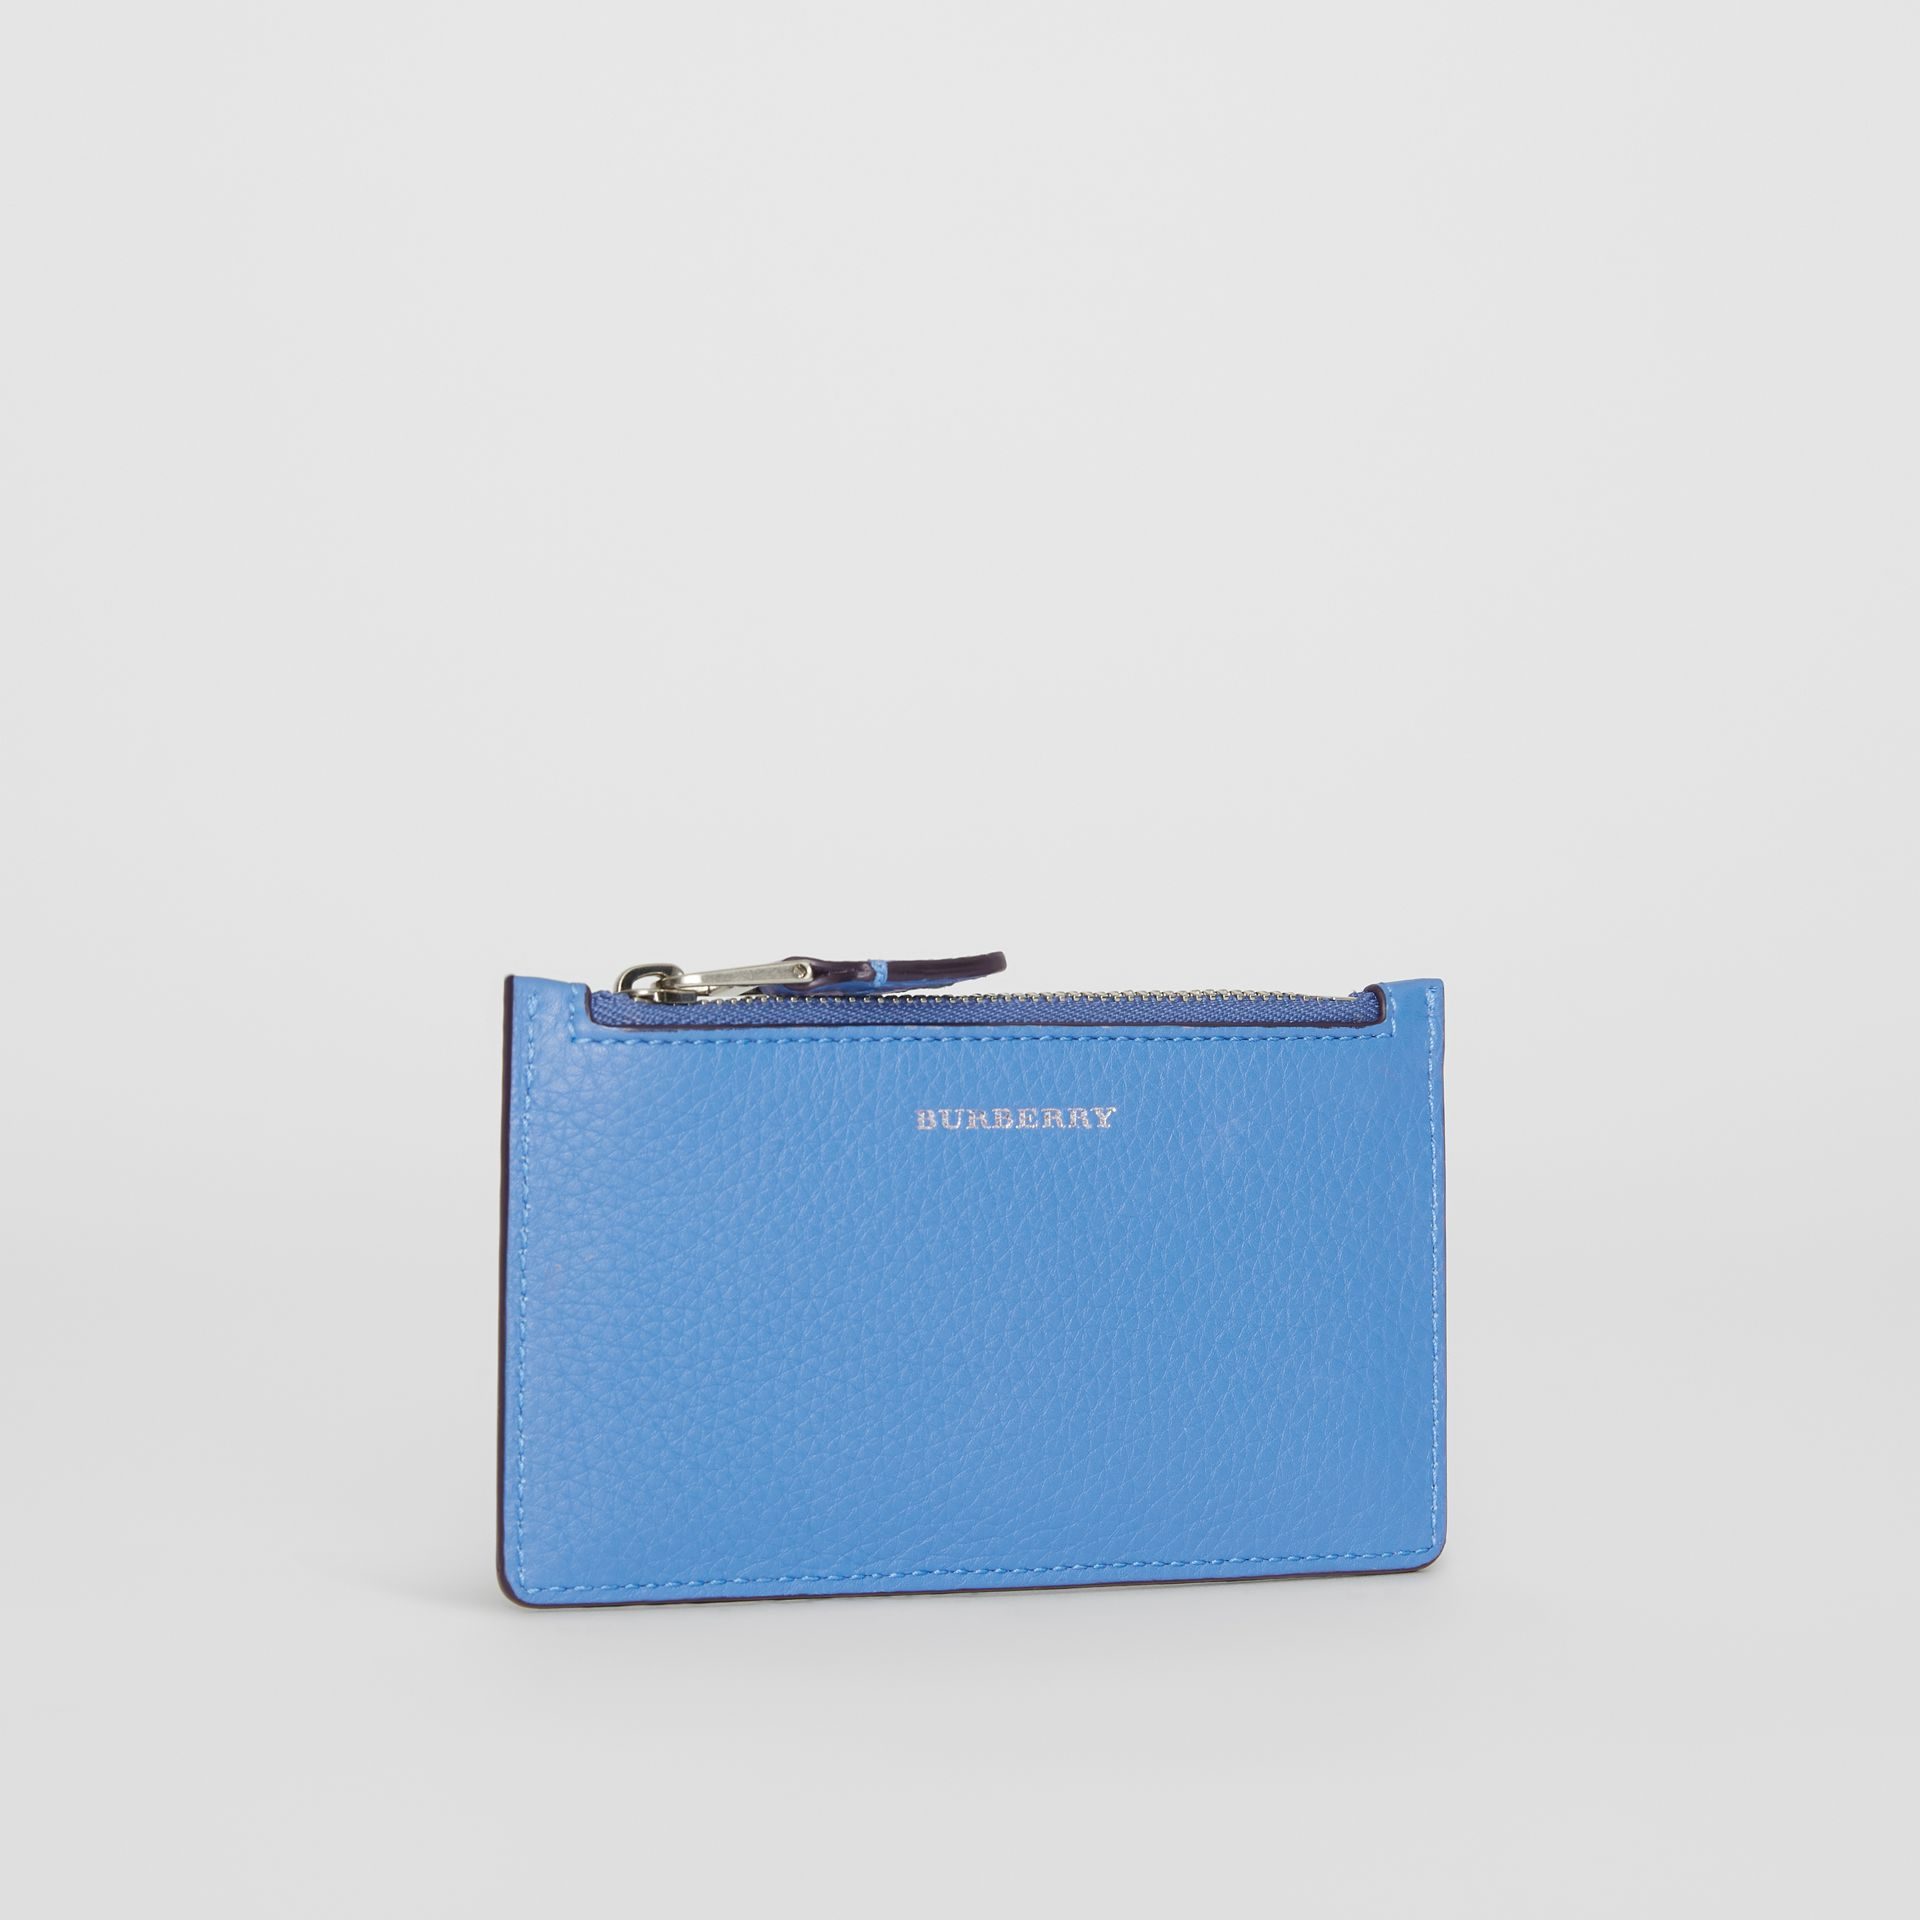 Two-tone Leather Card Case in Hydrangea Blue - Women | Burberry - gallery image 4